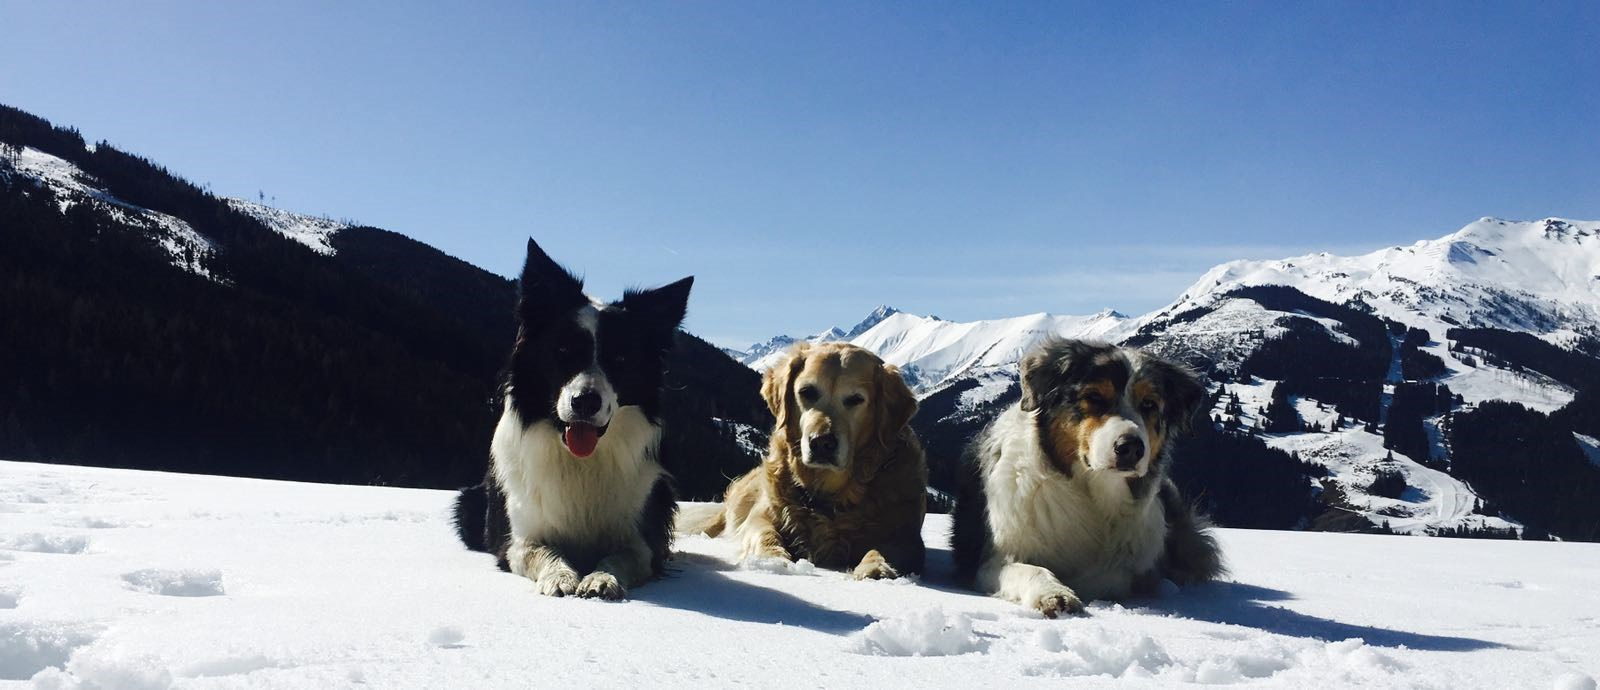 Urlaub-mit-Hund: Winterkulisse in Rauris - Hotel Grimming Dogs & Friends